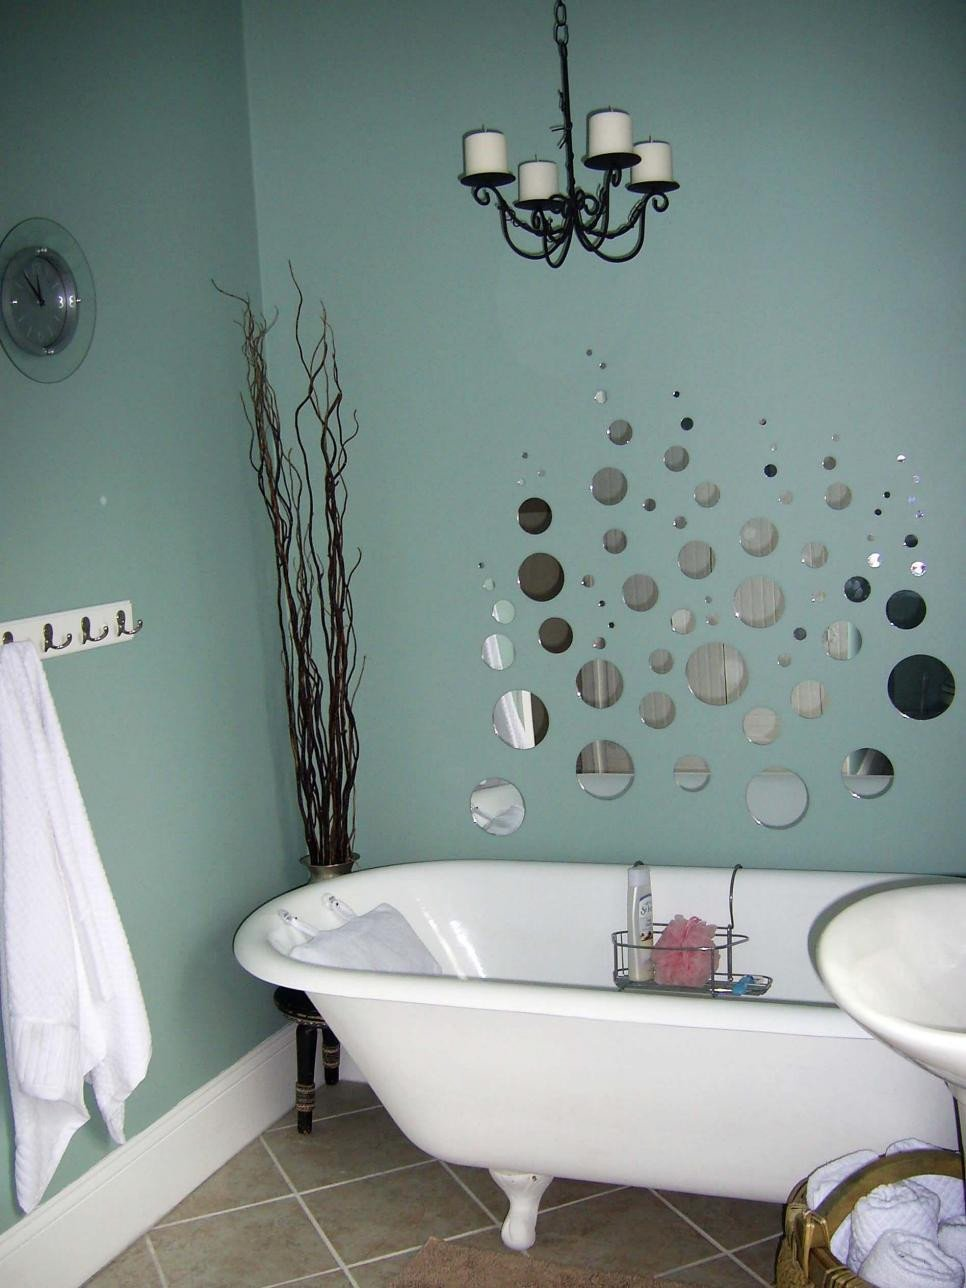 Bathrooms on a Bud Our 10 Favorites From Rate My Space